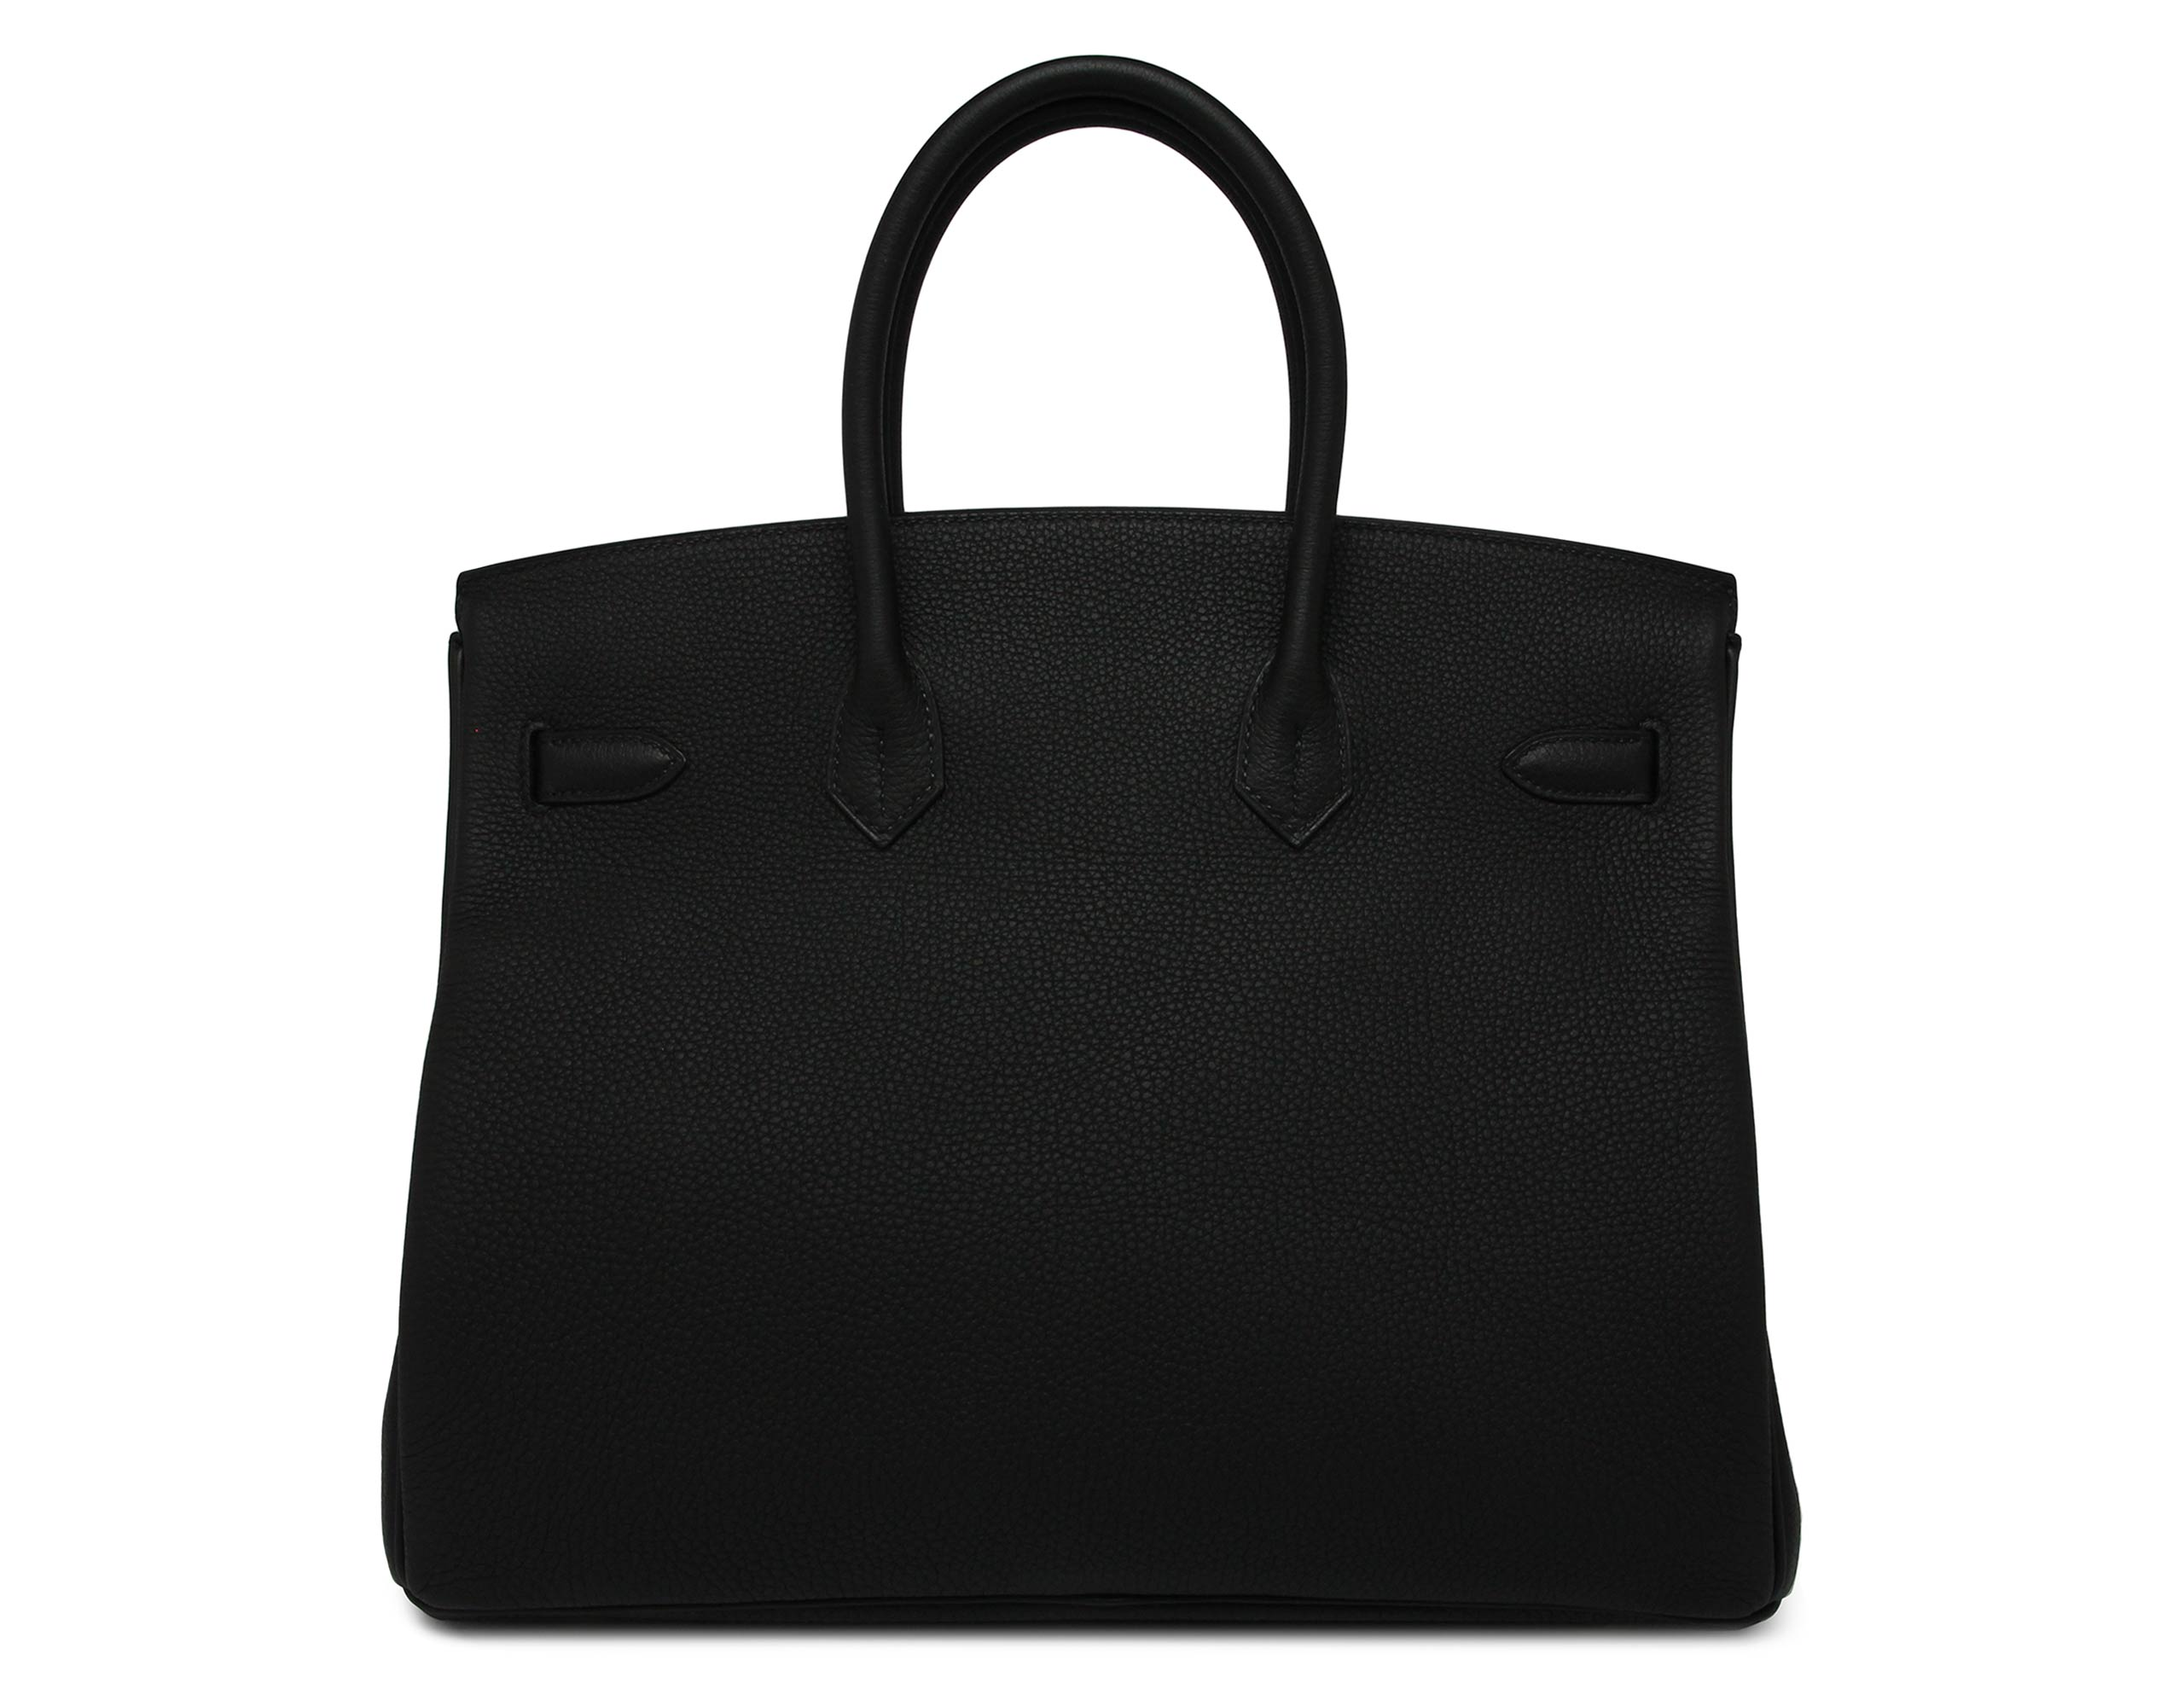 Hermes Birkin Black Togo 35cm with Gold Hardware